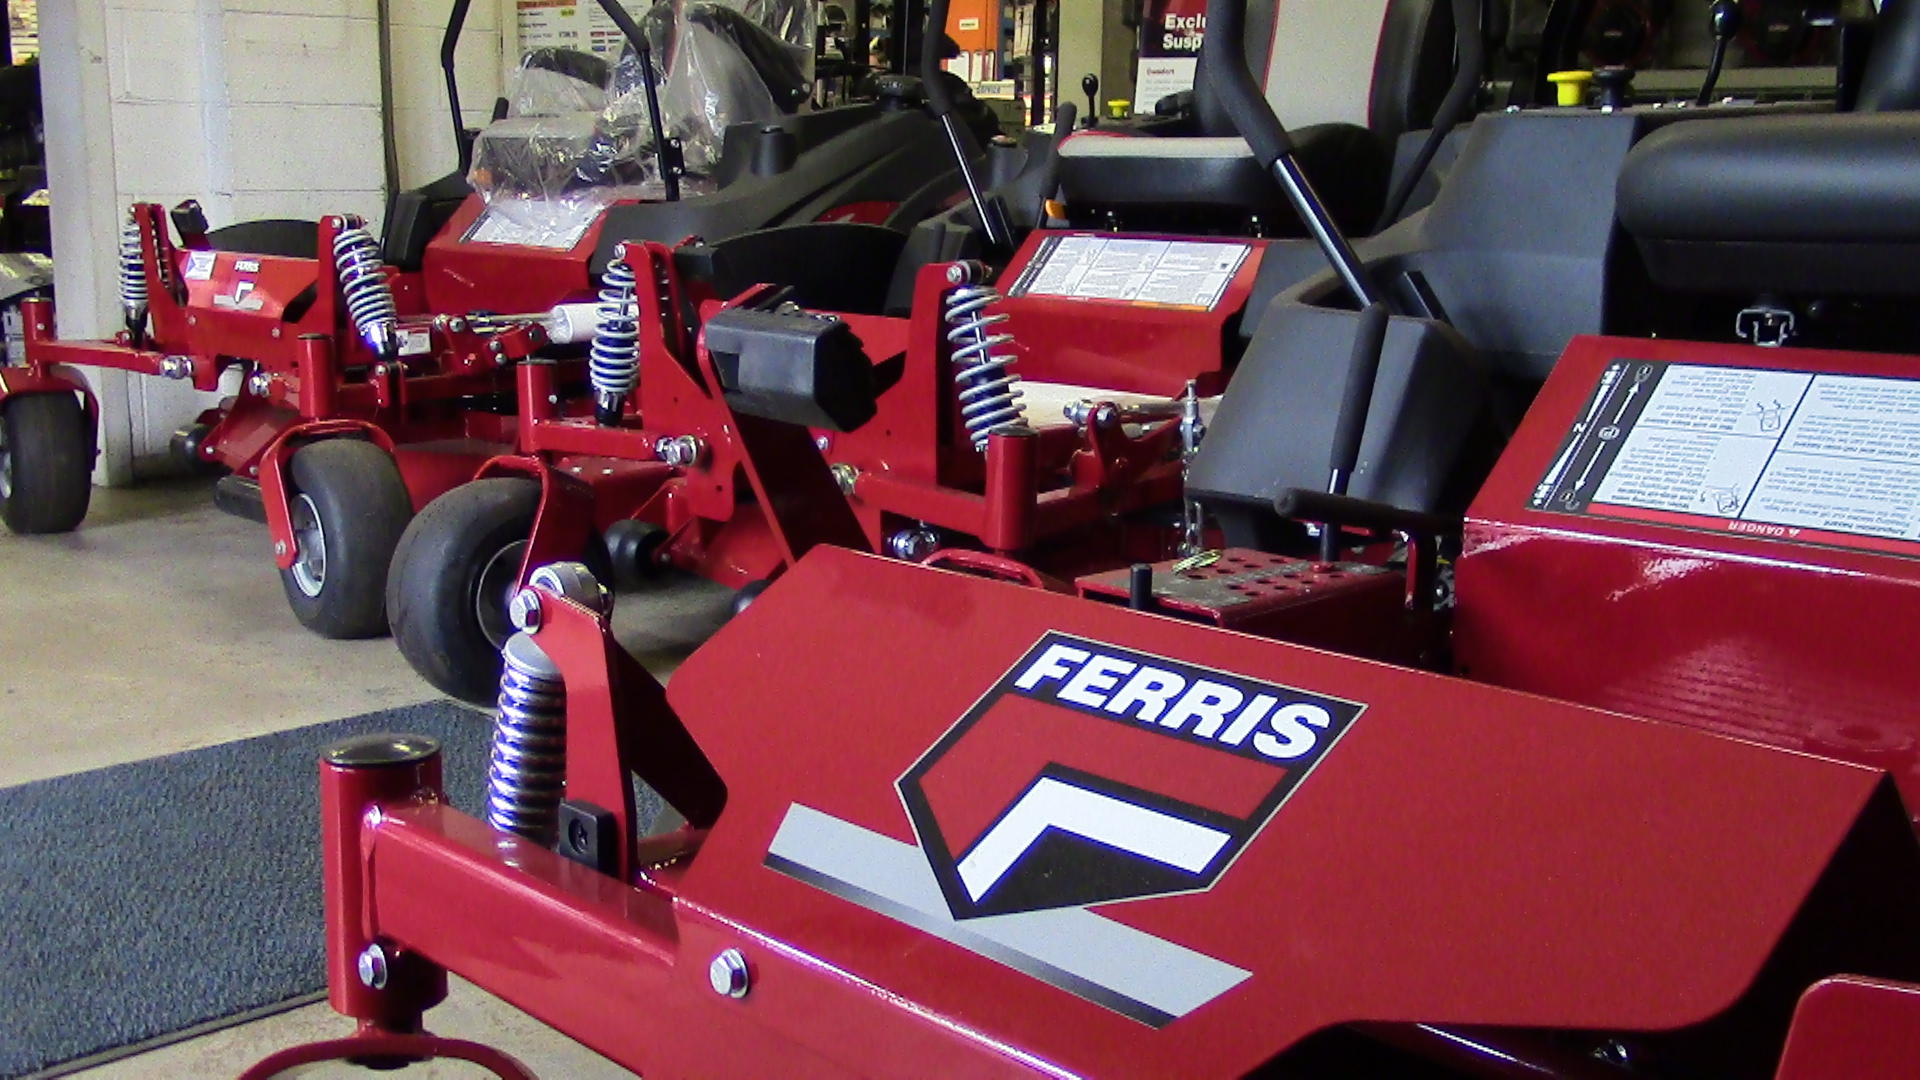 Ferris Professional mower